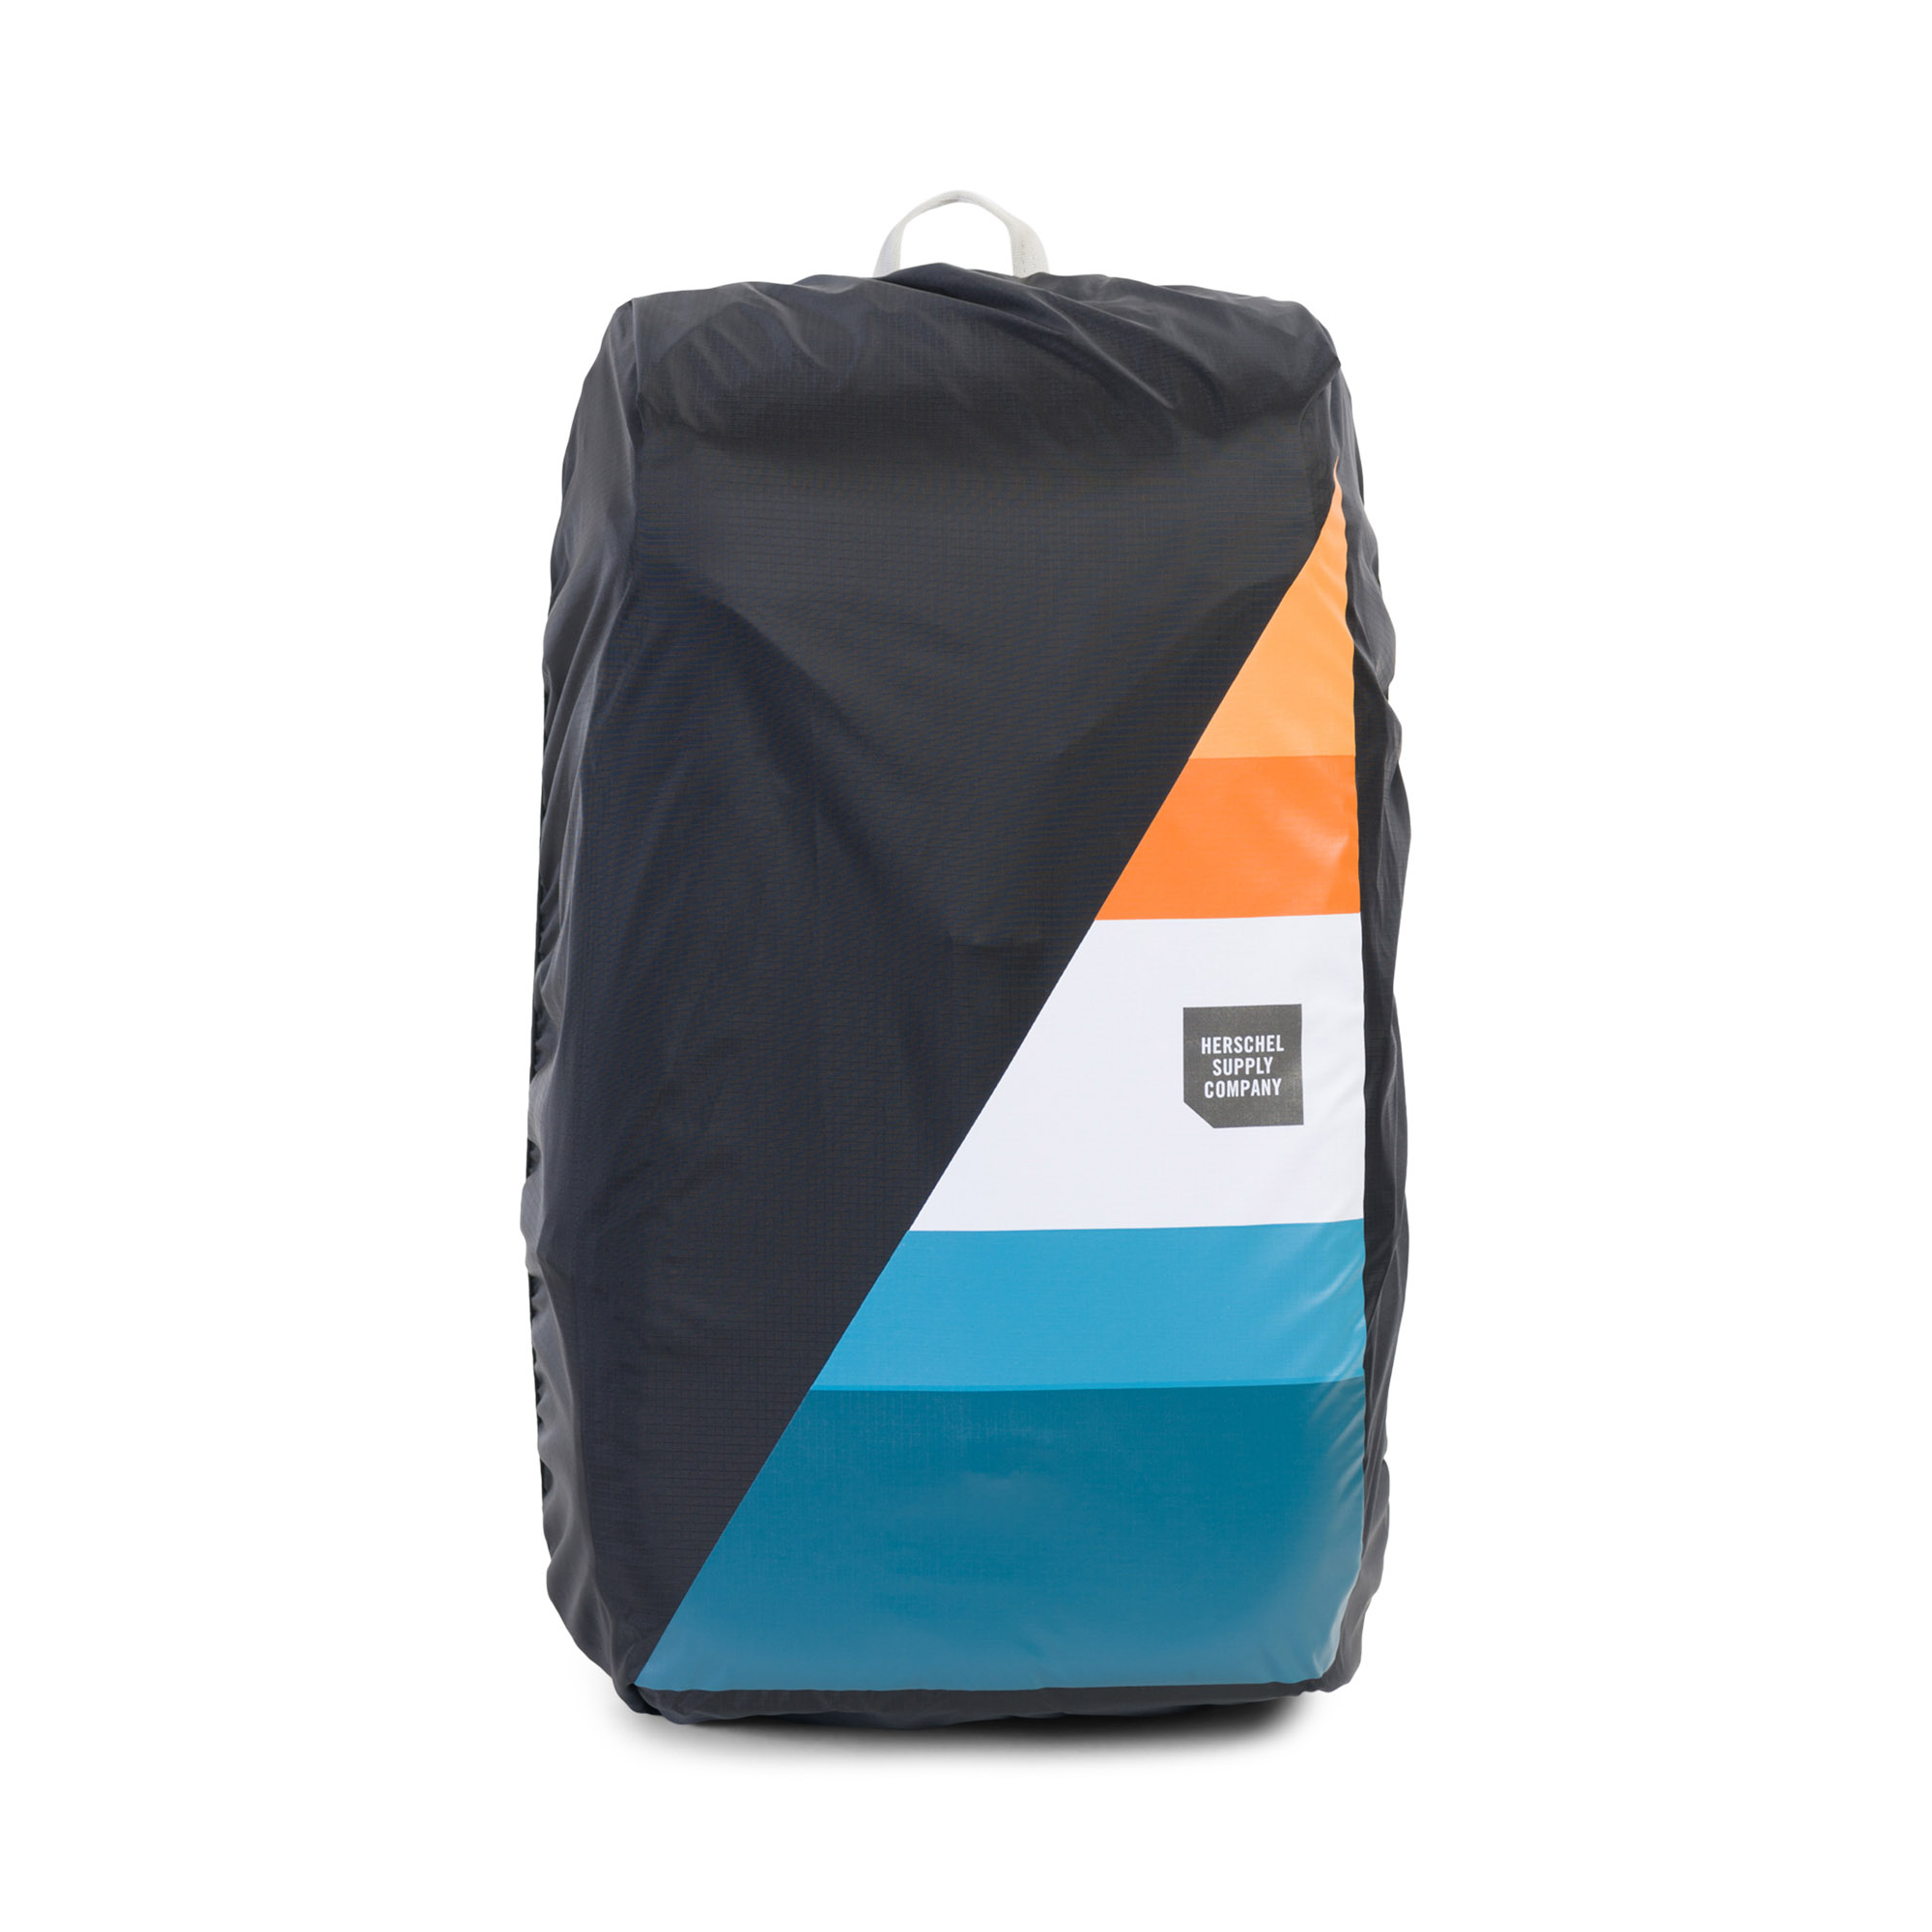 76f67ff4195 Barlow Backpack Medium